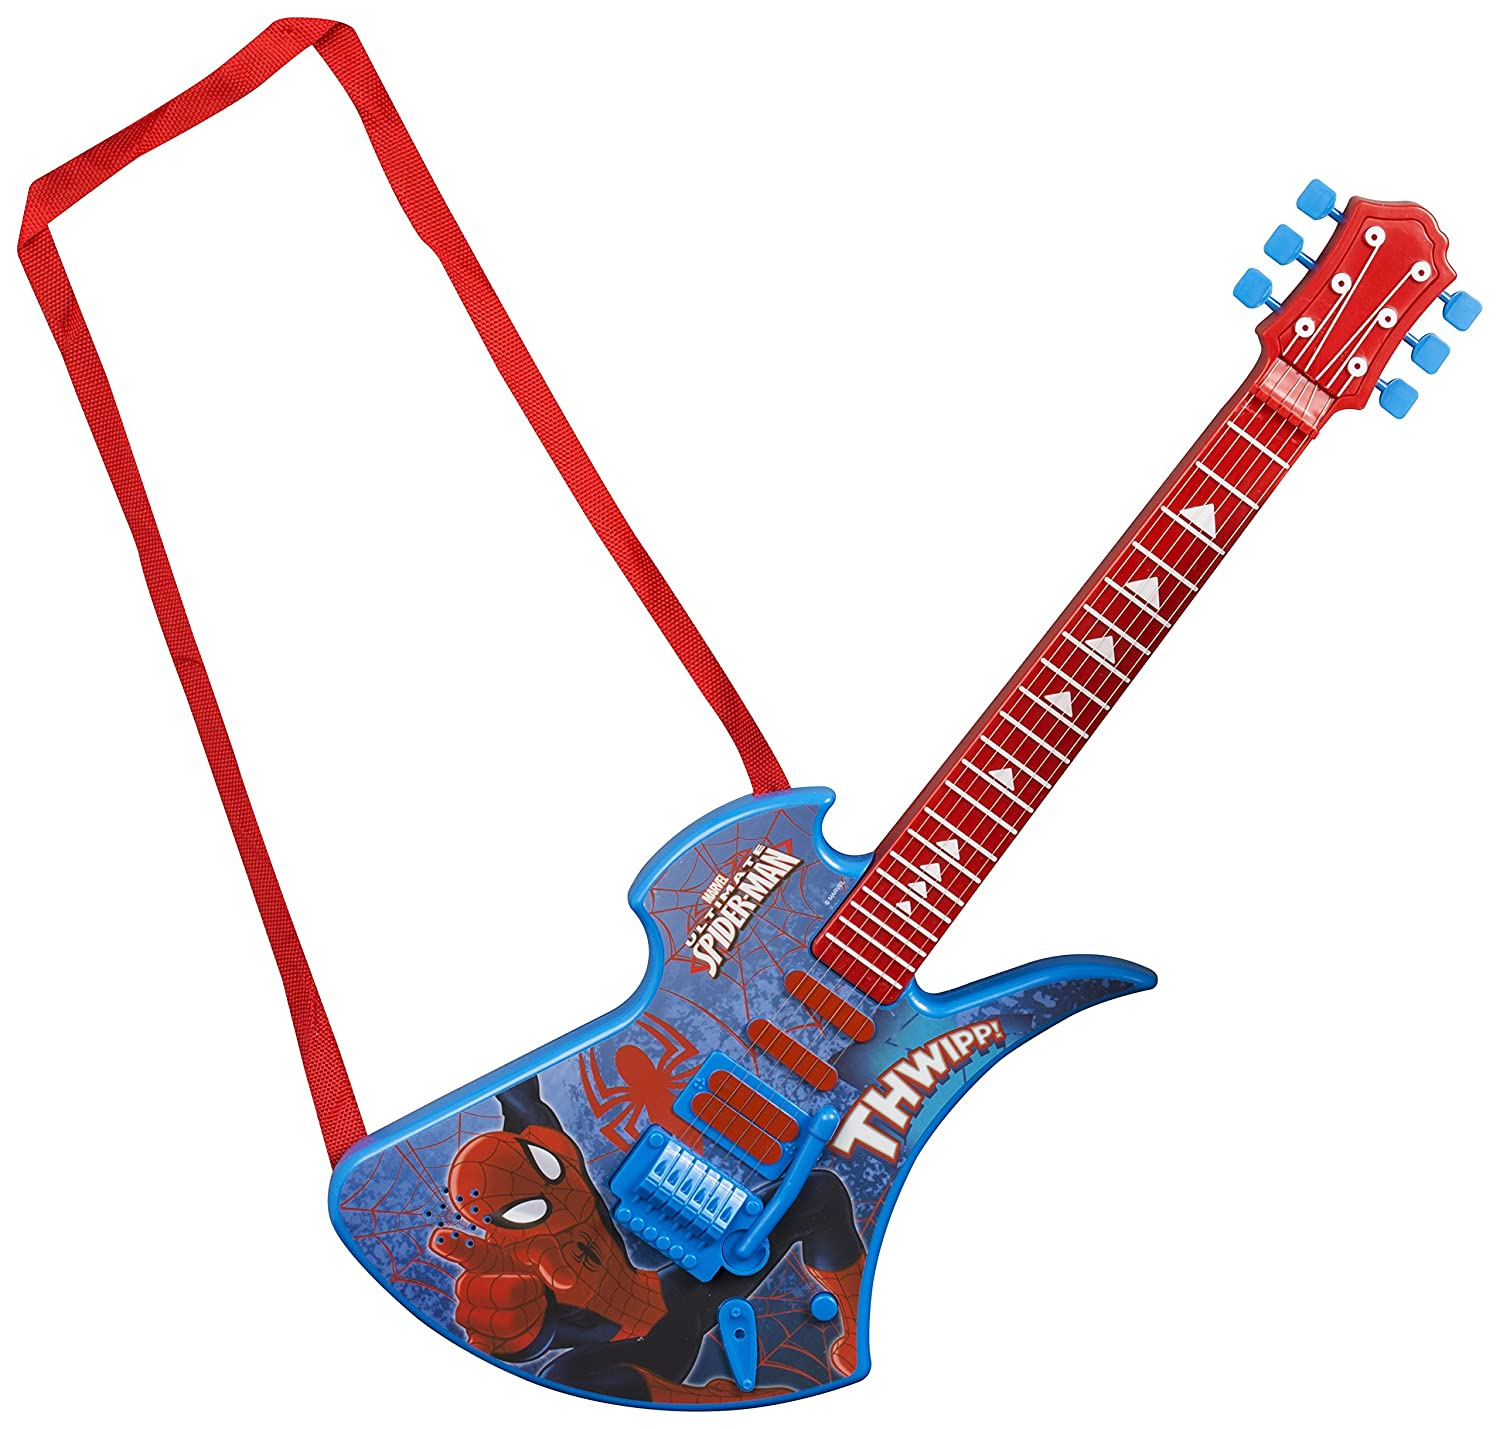 Sambro Spiderman Deluxe Guitar Amazon Toys & Games